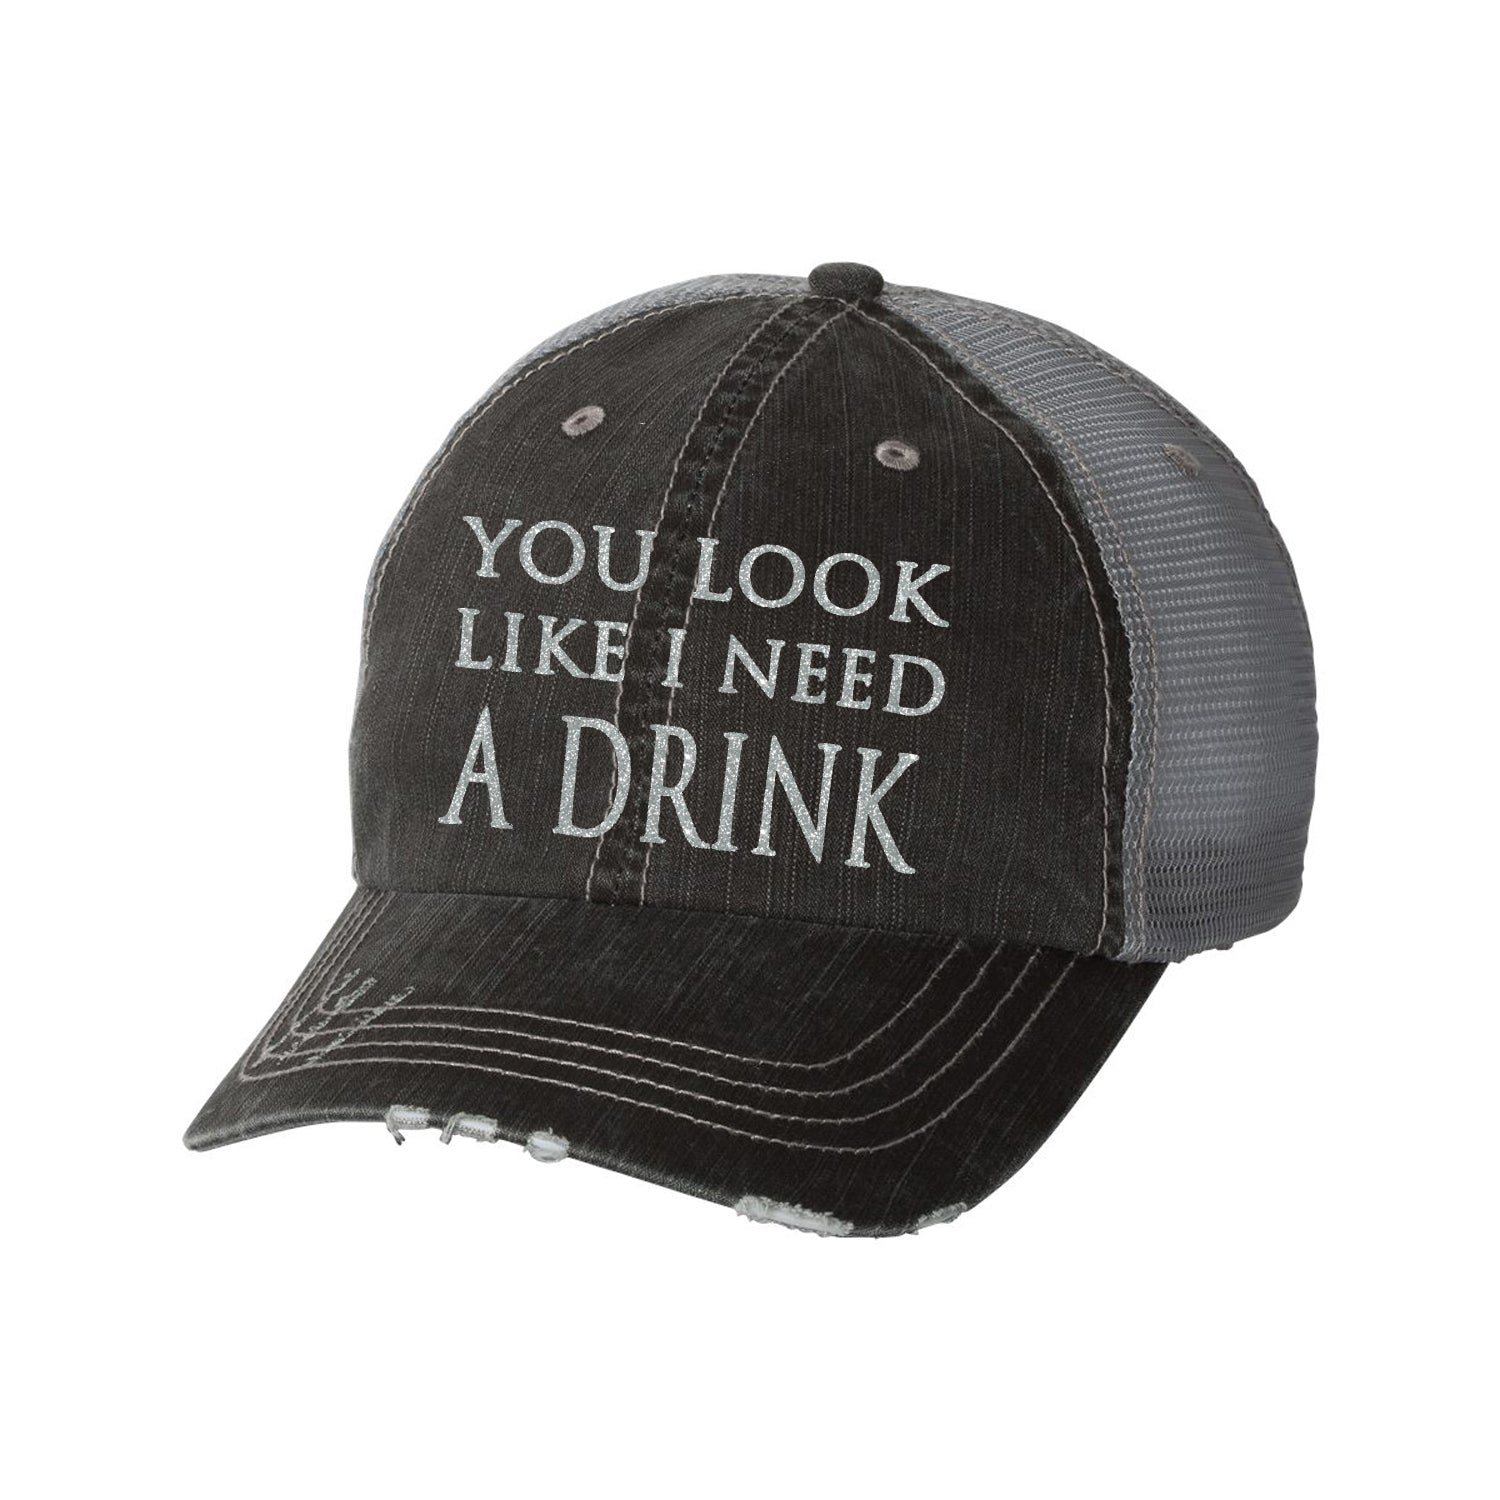 You Look Like I Need a Drink Distressed Ladies Trucker Hat